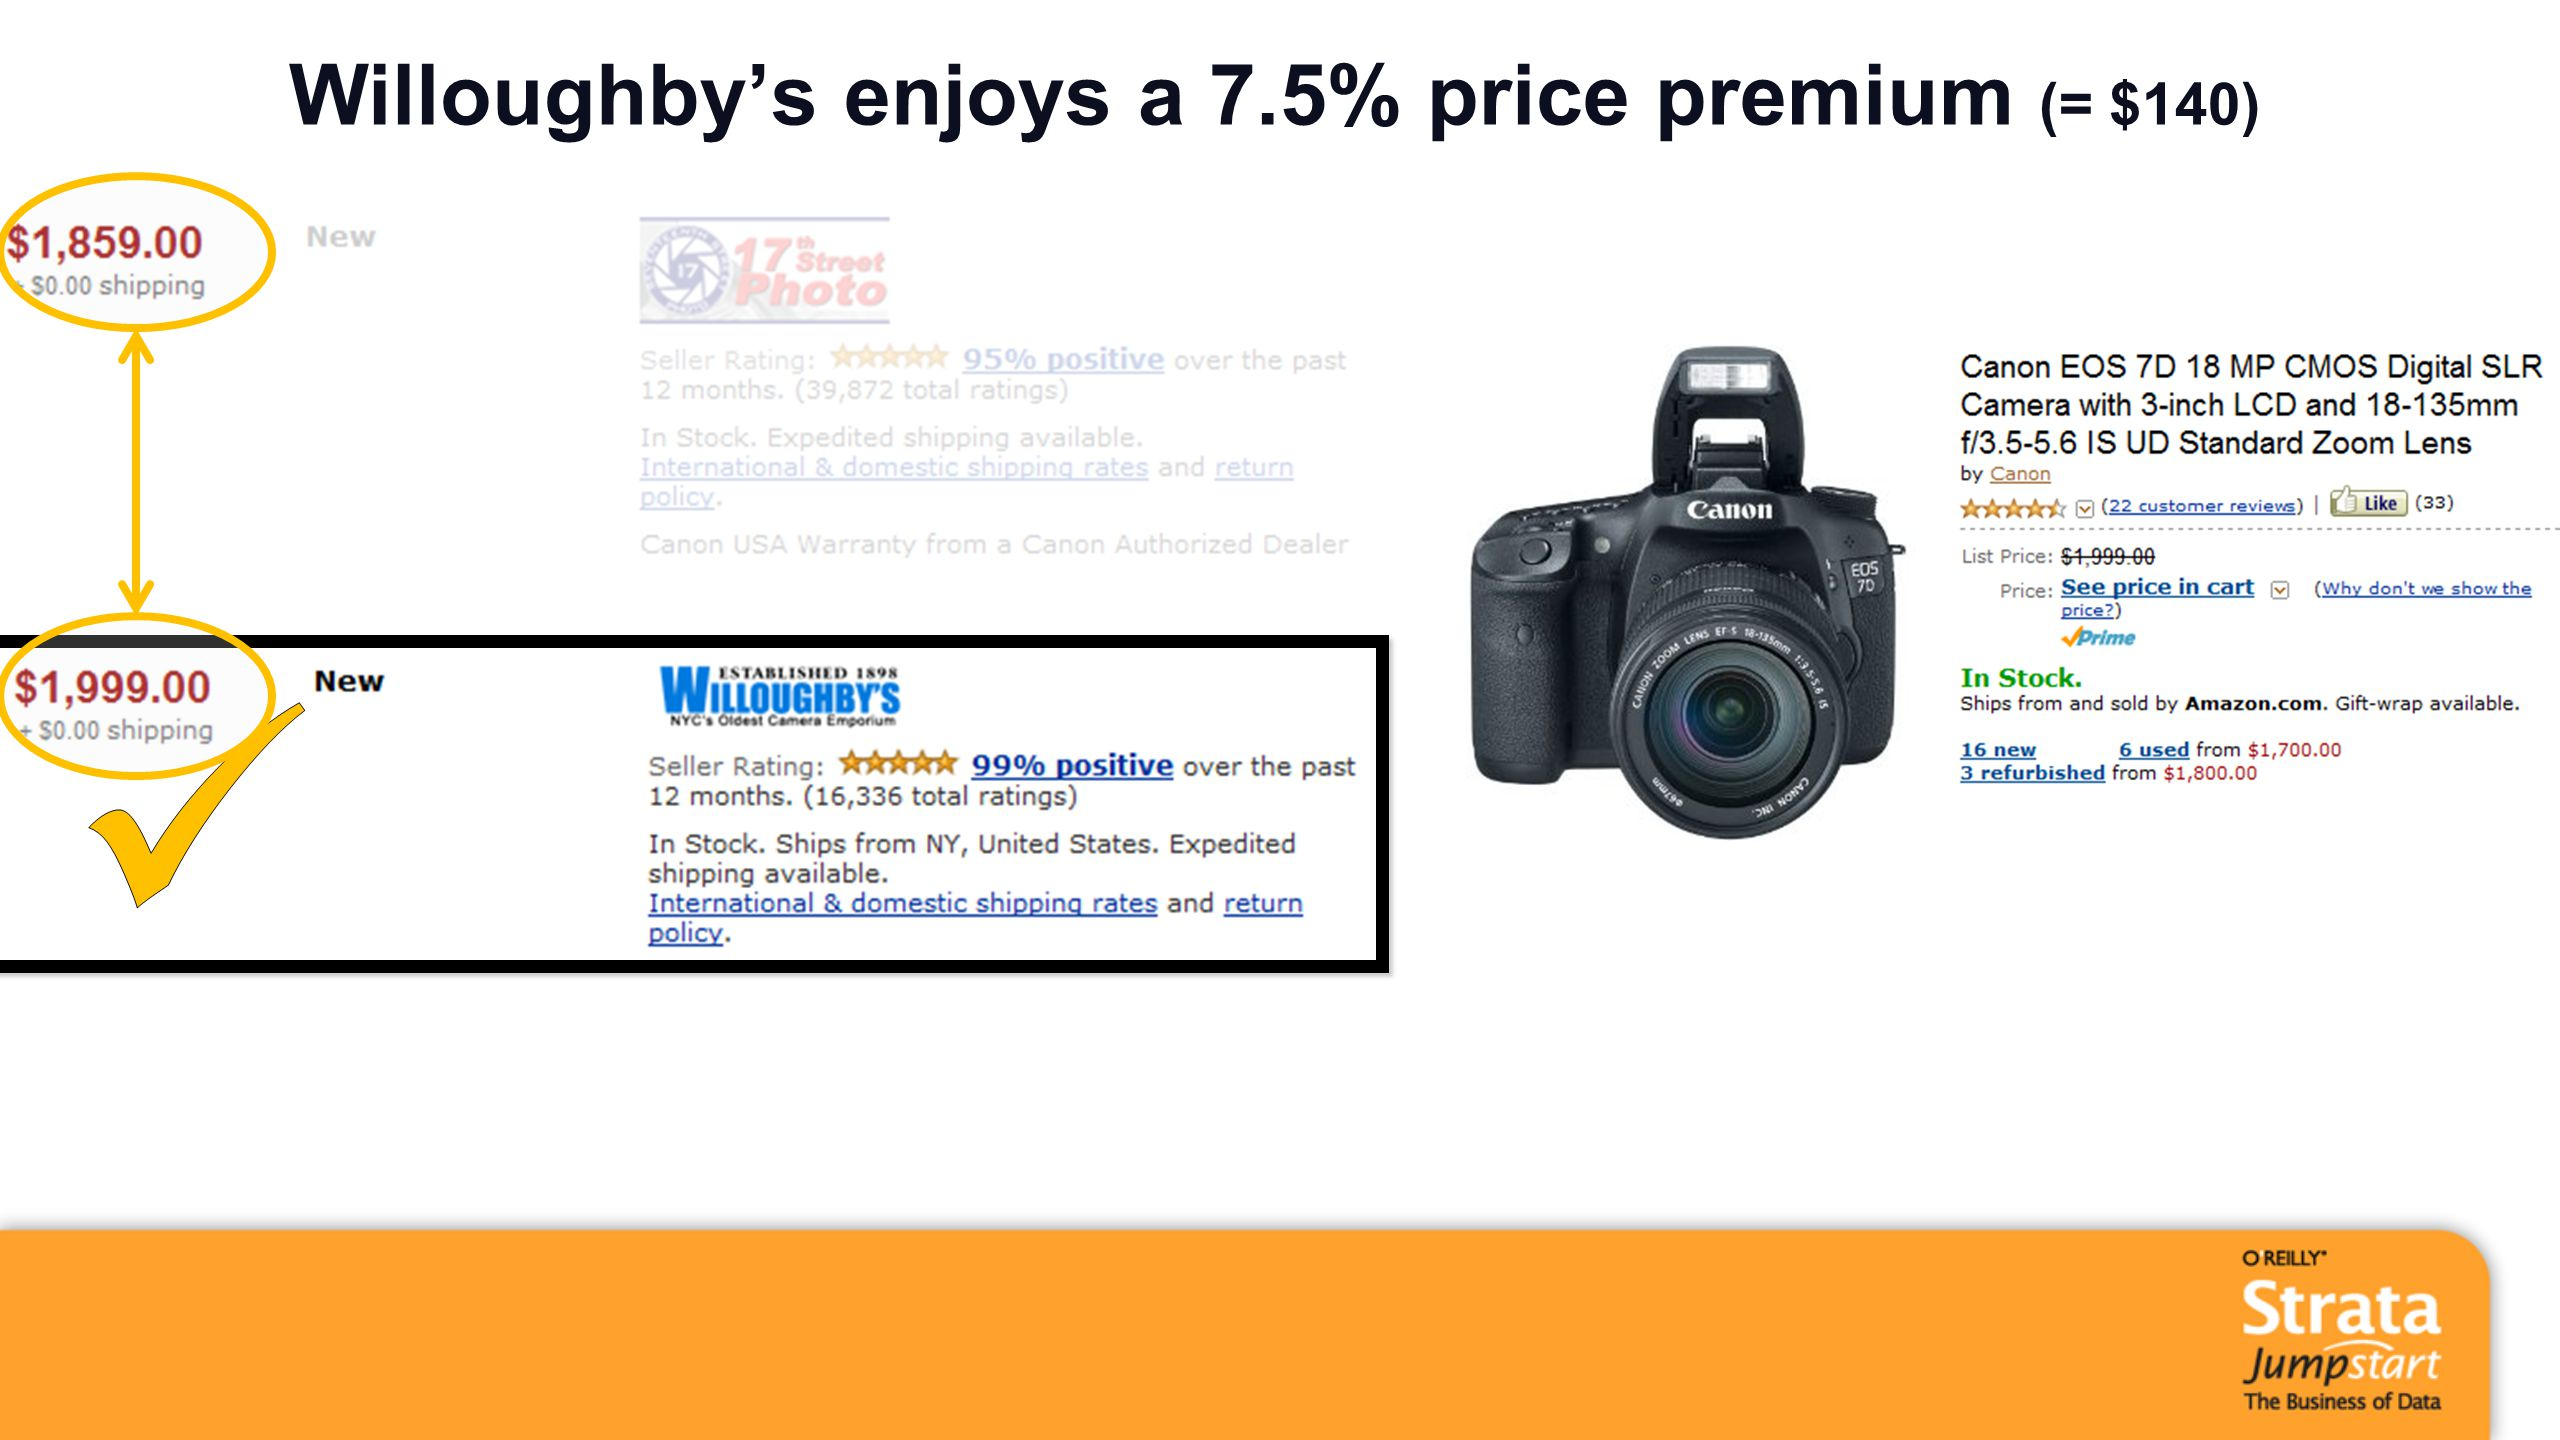 Willoughby's enjoys a 7.5% price premium (= $140)